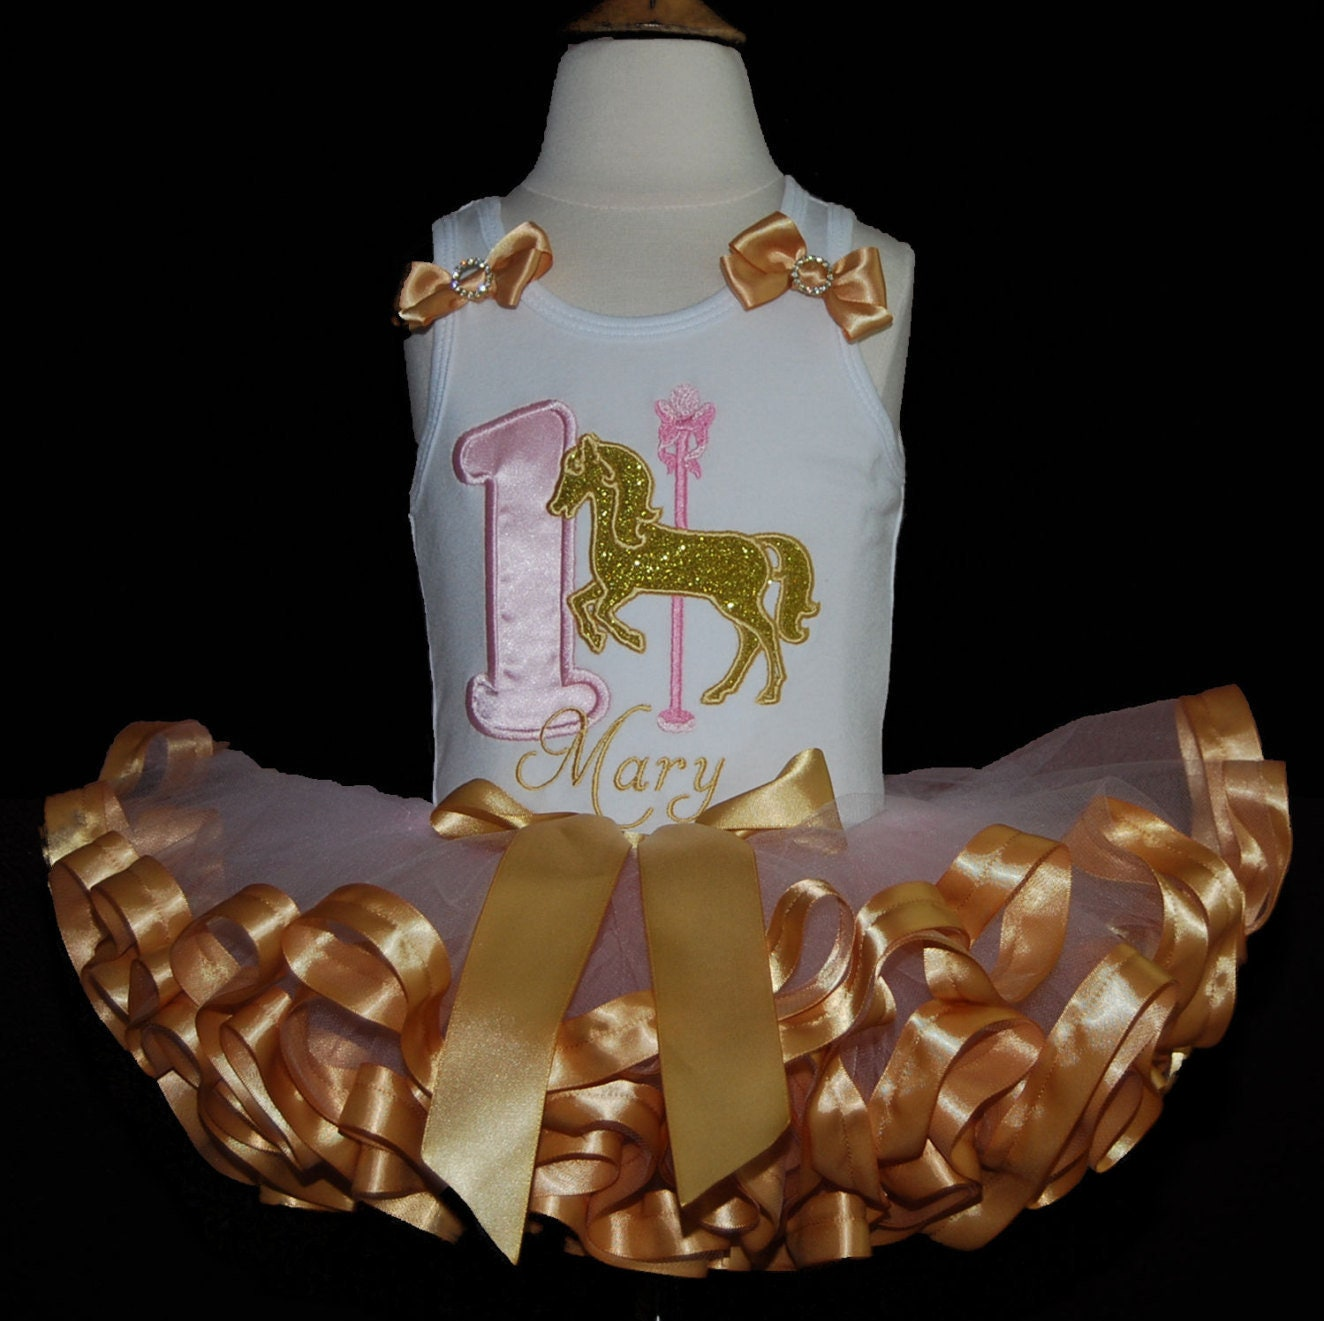 carousel horse birthday tutu 1st birthday outfit pink and gold tutu outfit princess birthday tutu birthday dress cake smash ribbon tutu